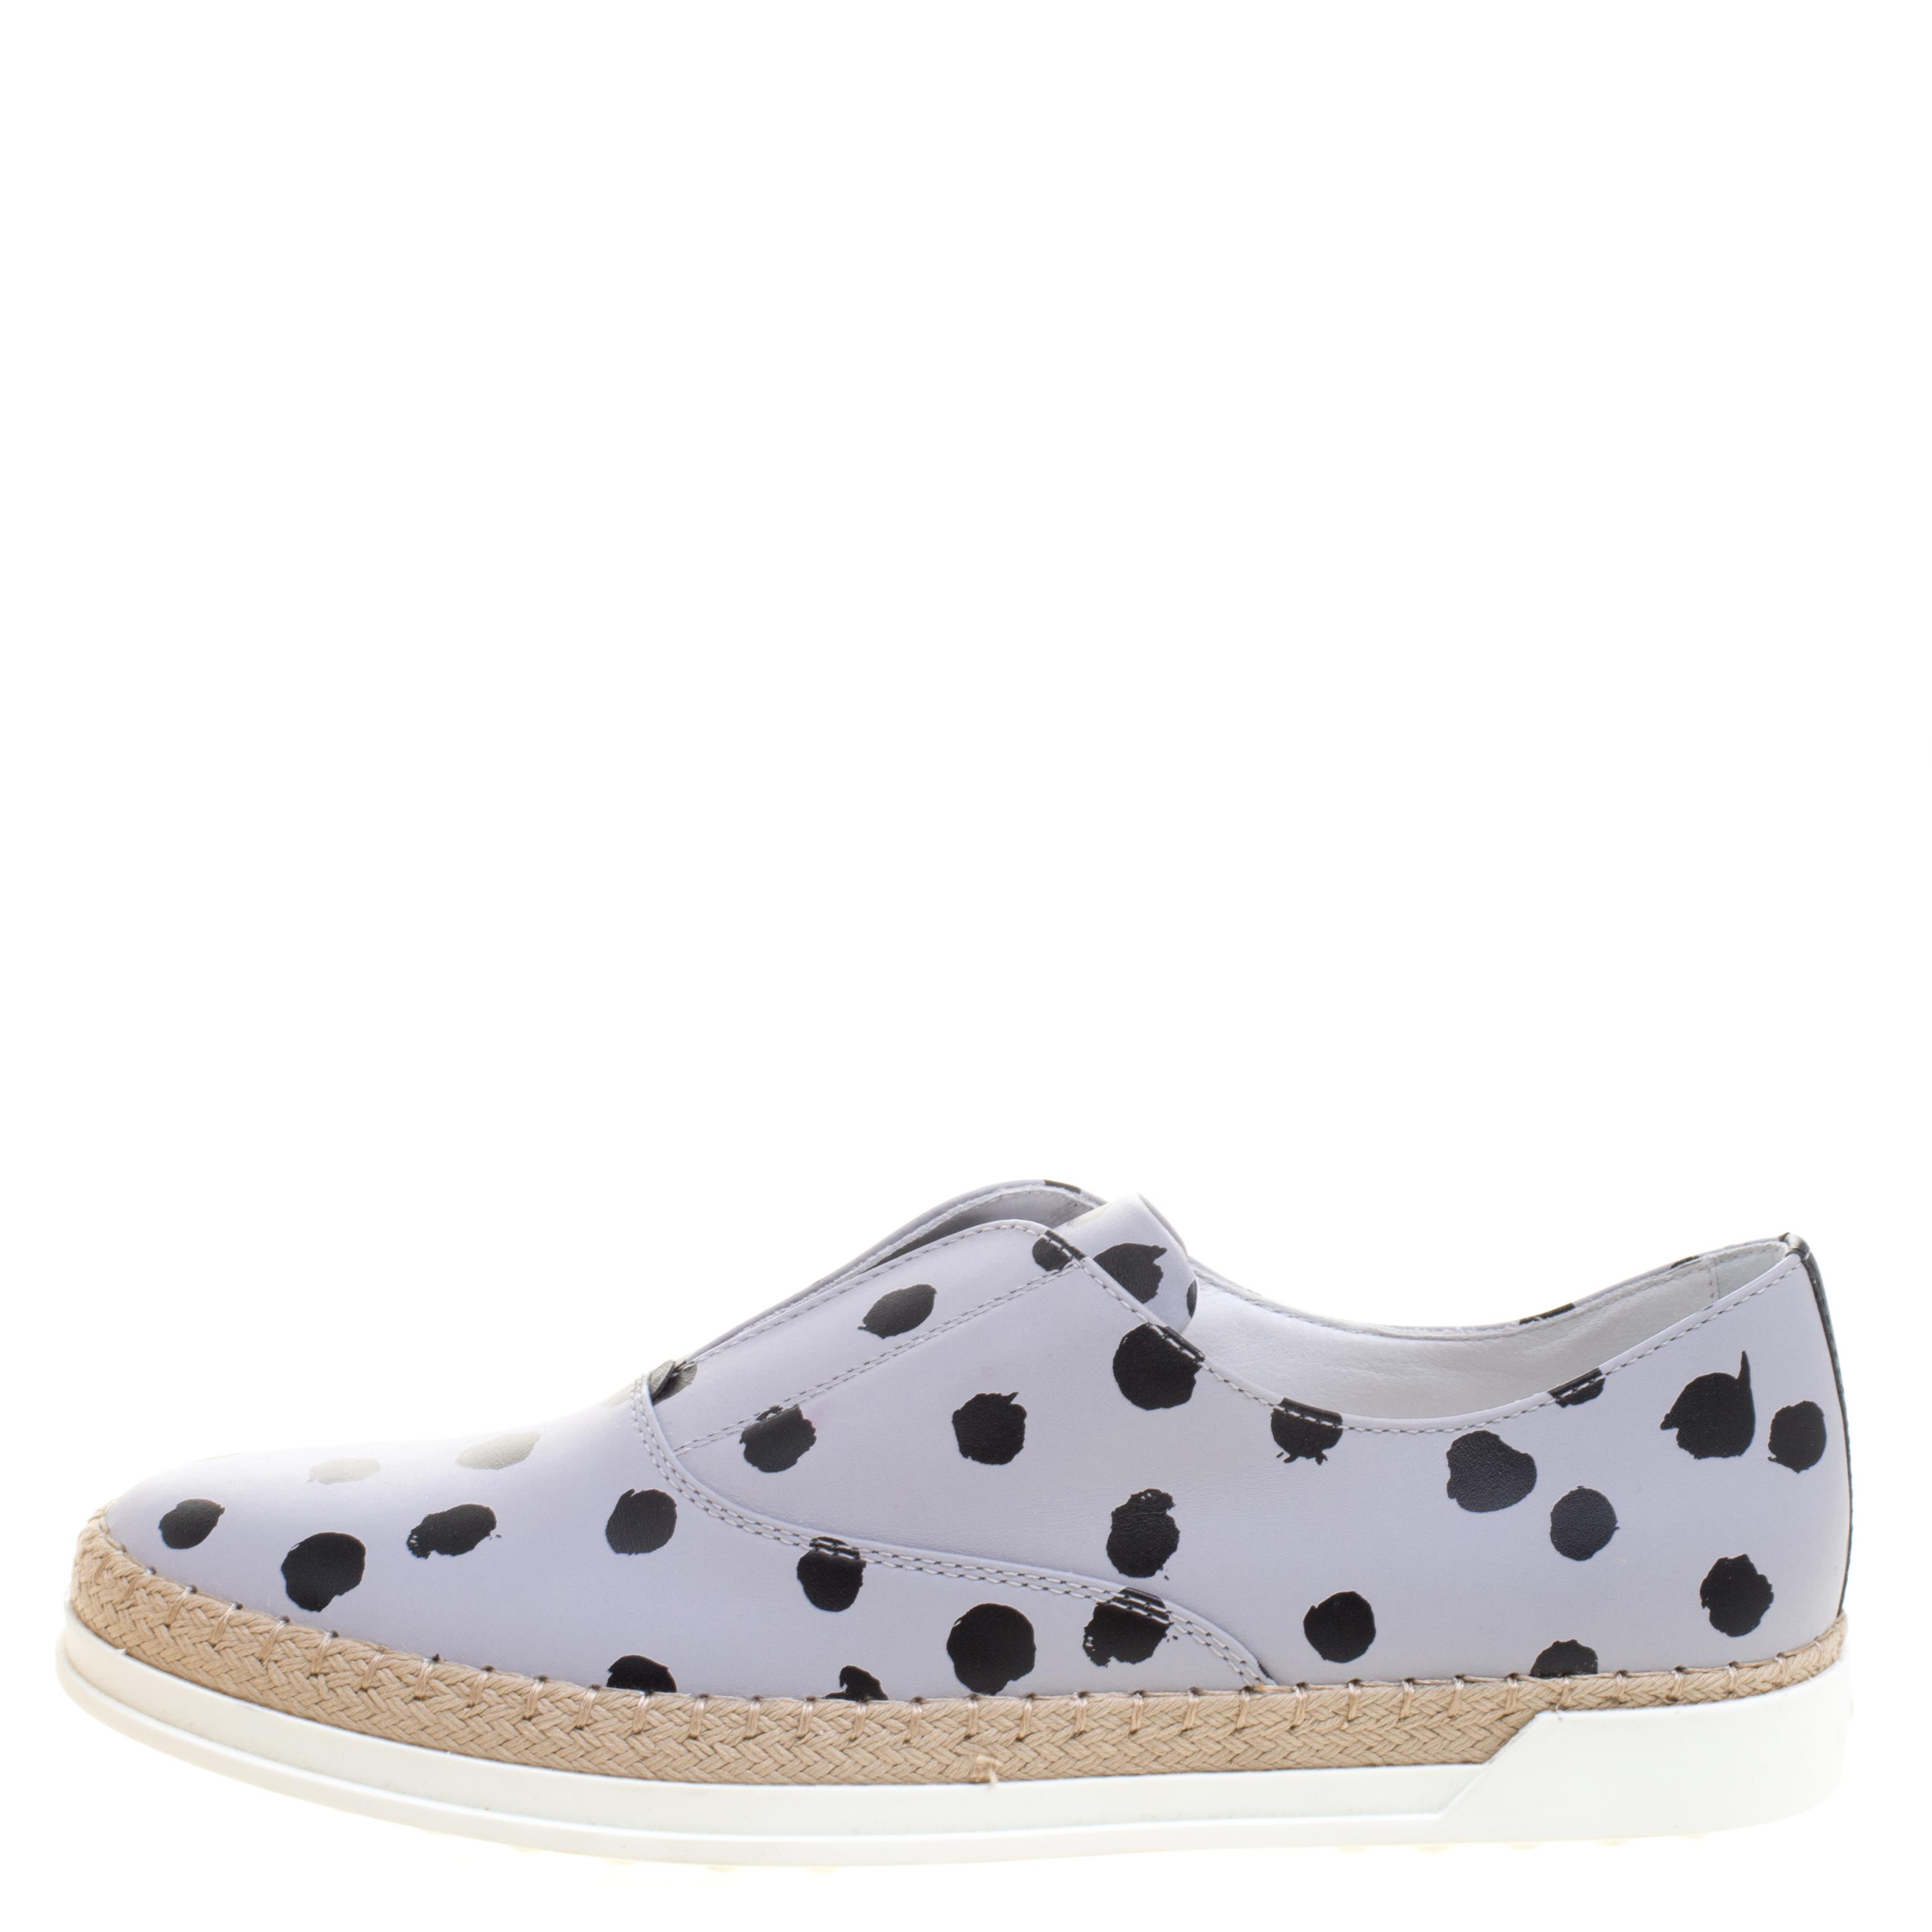 Tod's Dots Printed Leather Espadrille Slip-on Sneakers in Grey (Grey)